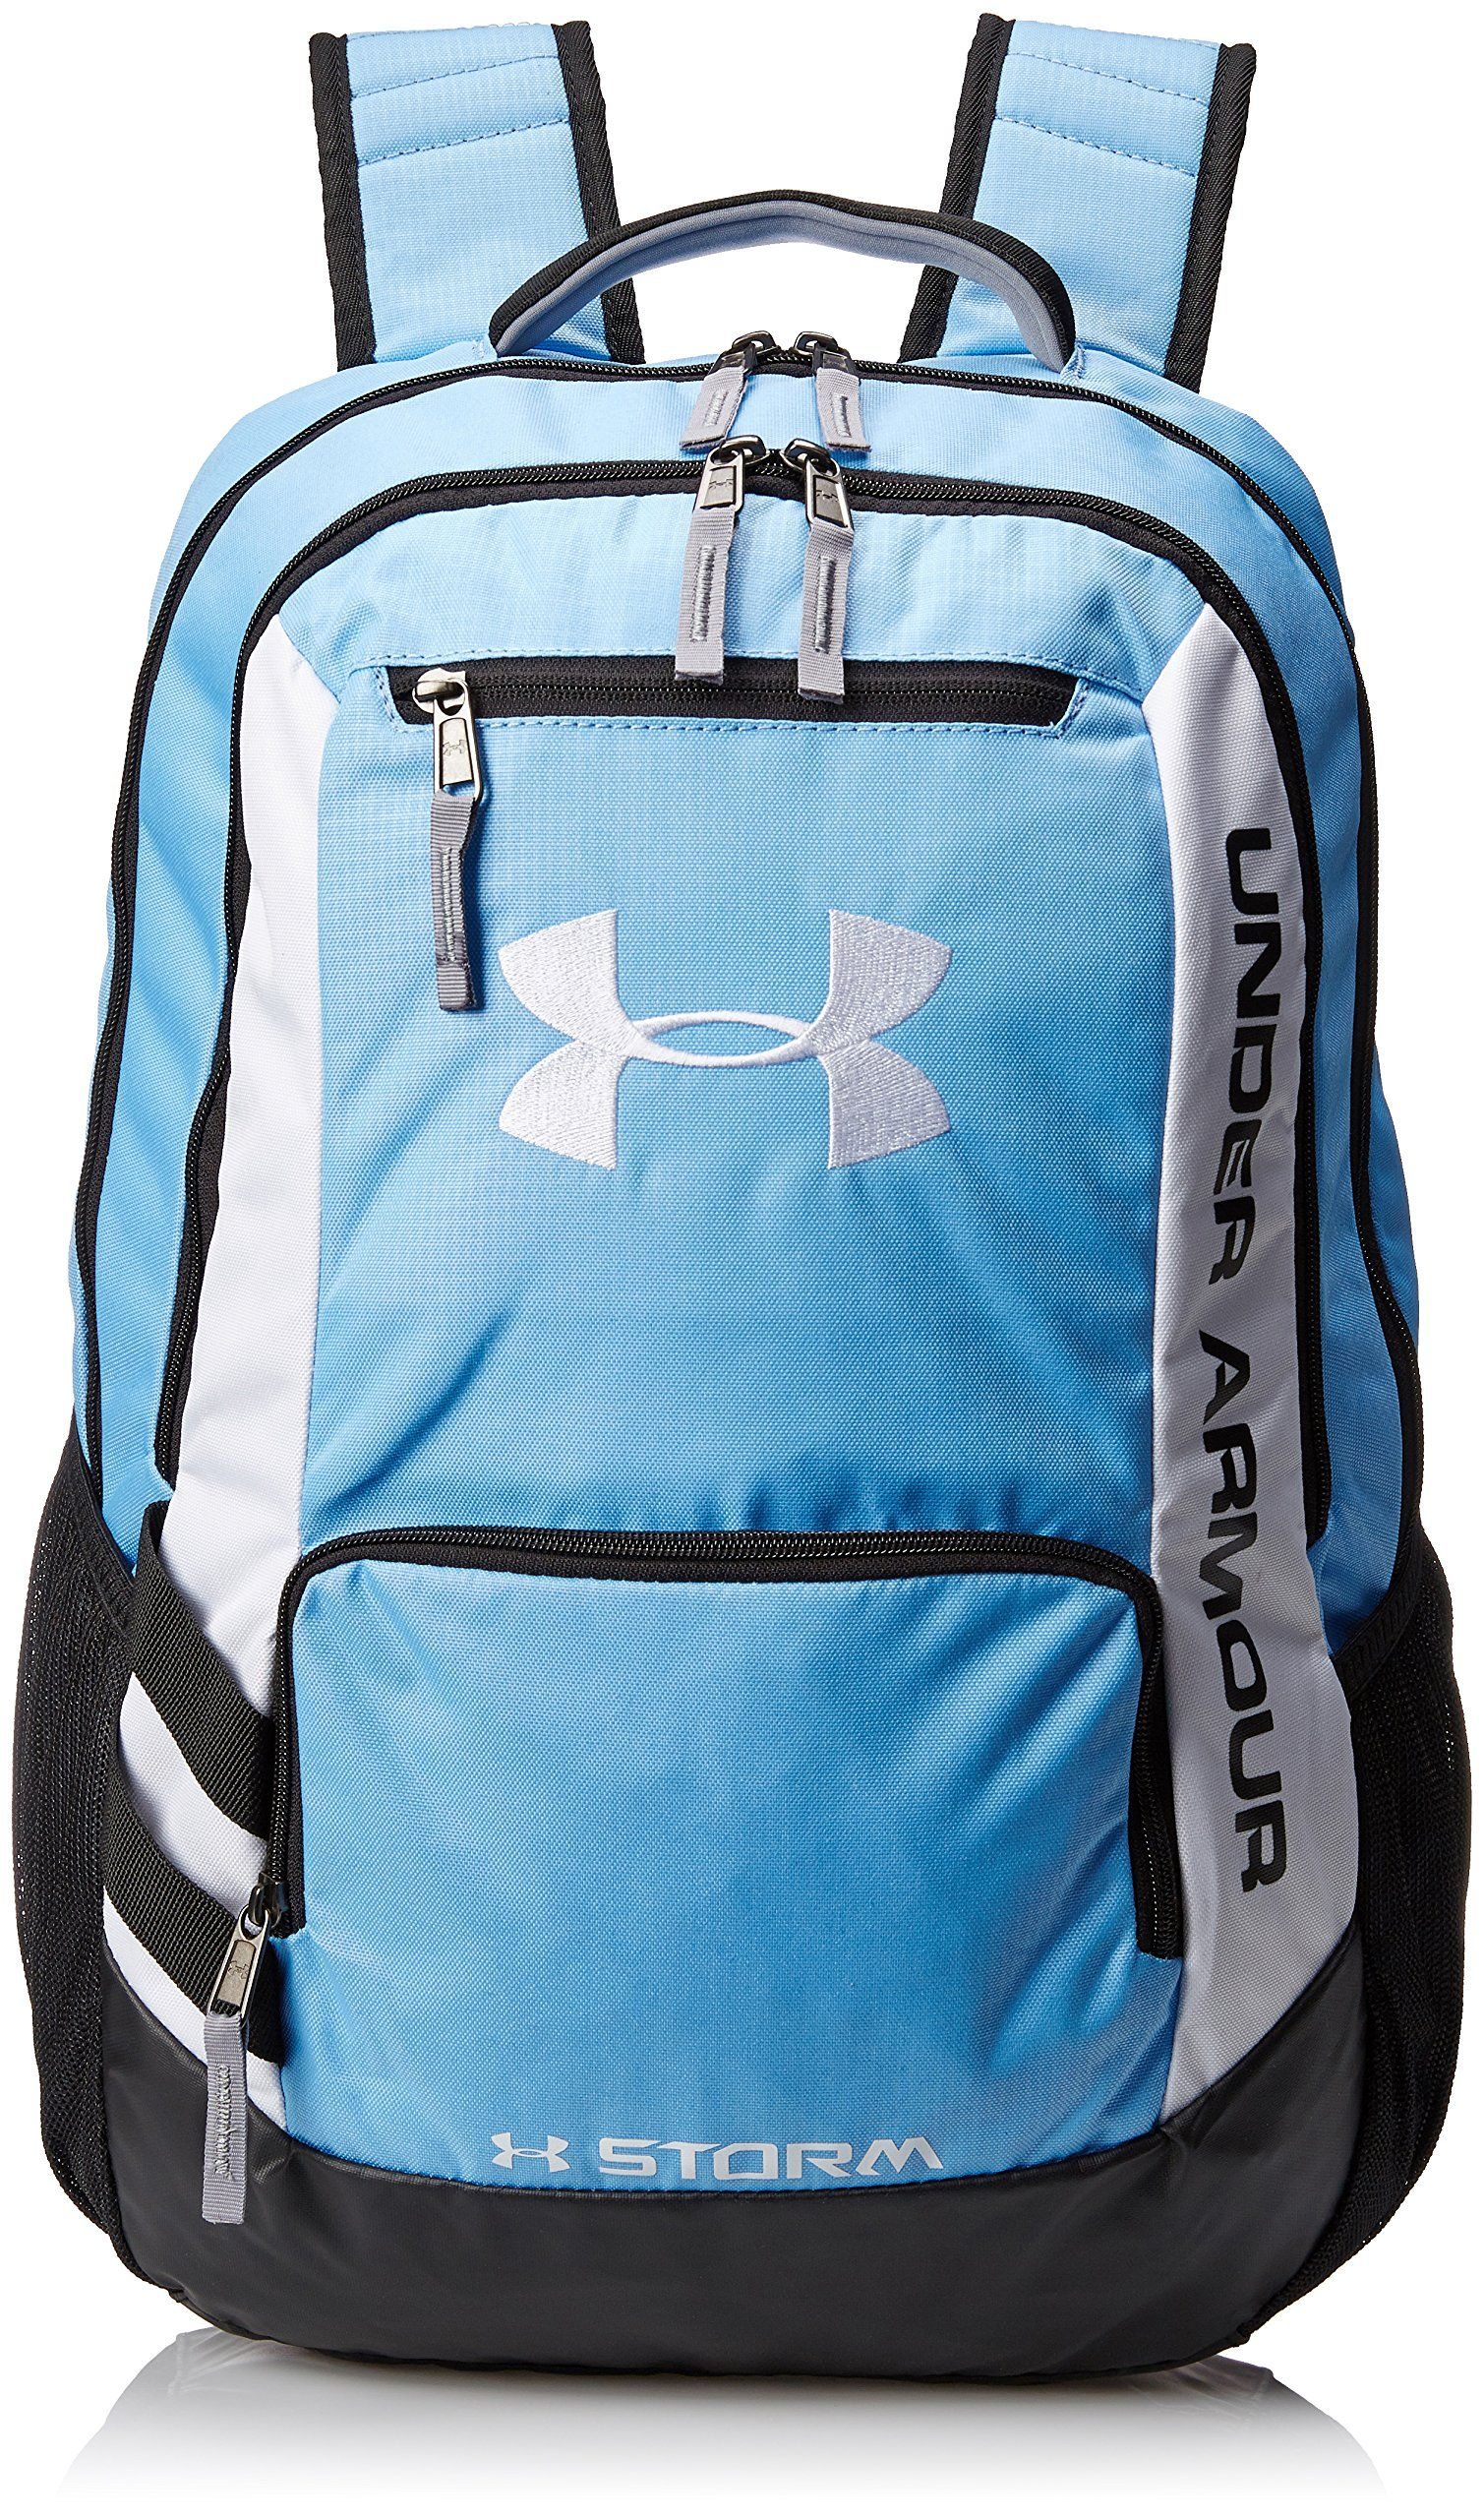 backpacks duffle bags gym bags for women under armour bags